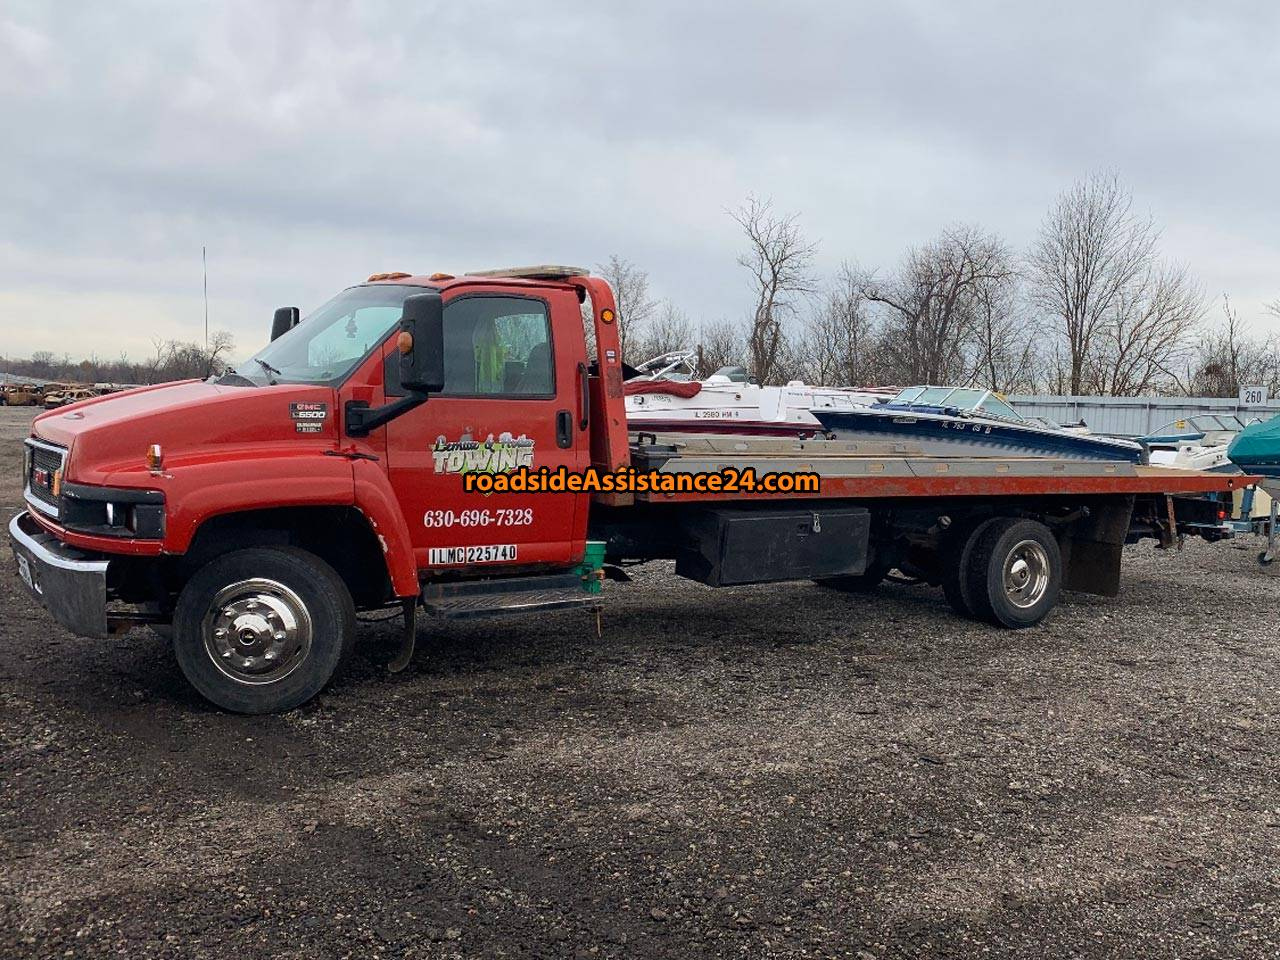 Lemuz & Avila towing